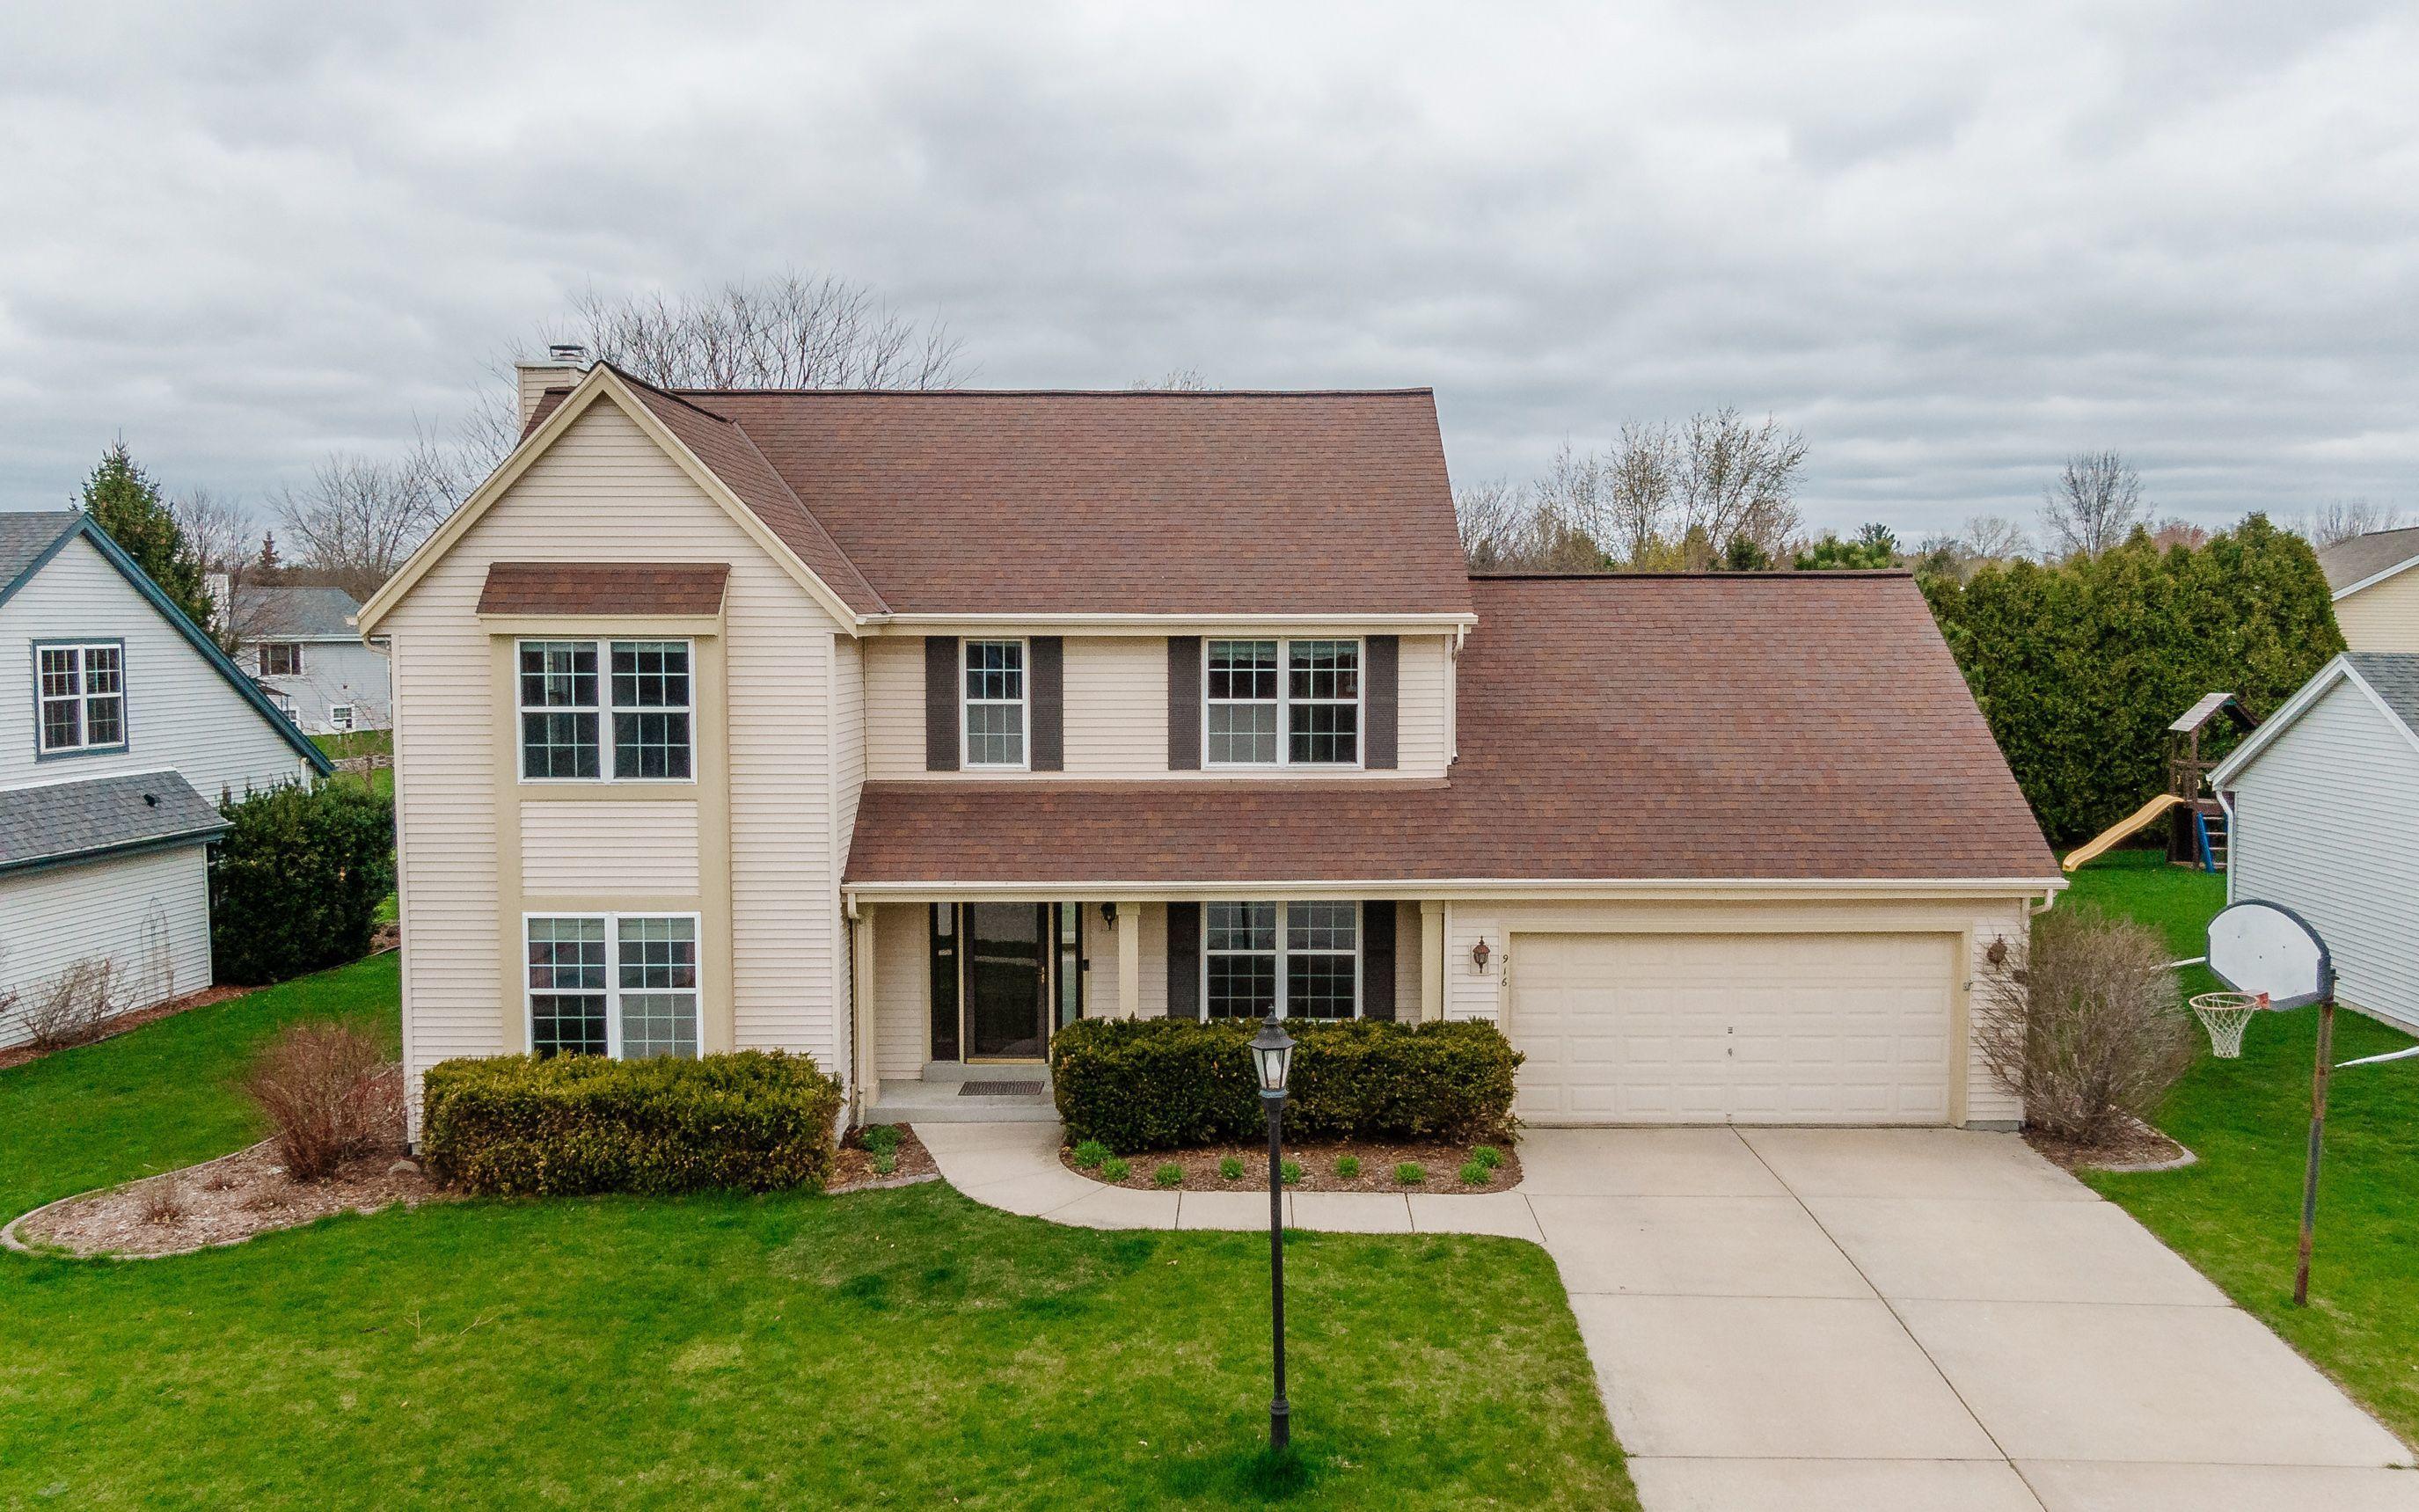 916 Shore Dr, Pewaukee, Wisconsin 53072, 4 Bedrooms Bedrooms, 10 Rooms Rooms,2 BathroomsBathrooms,Single-Family,For Sale,Shore Dr,1735229